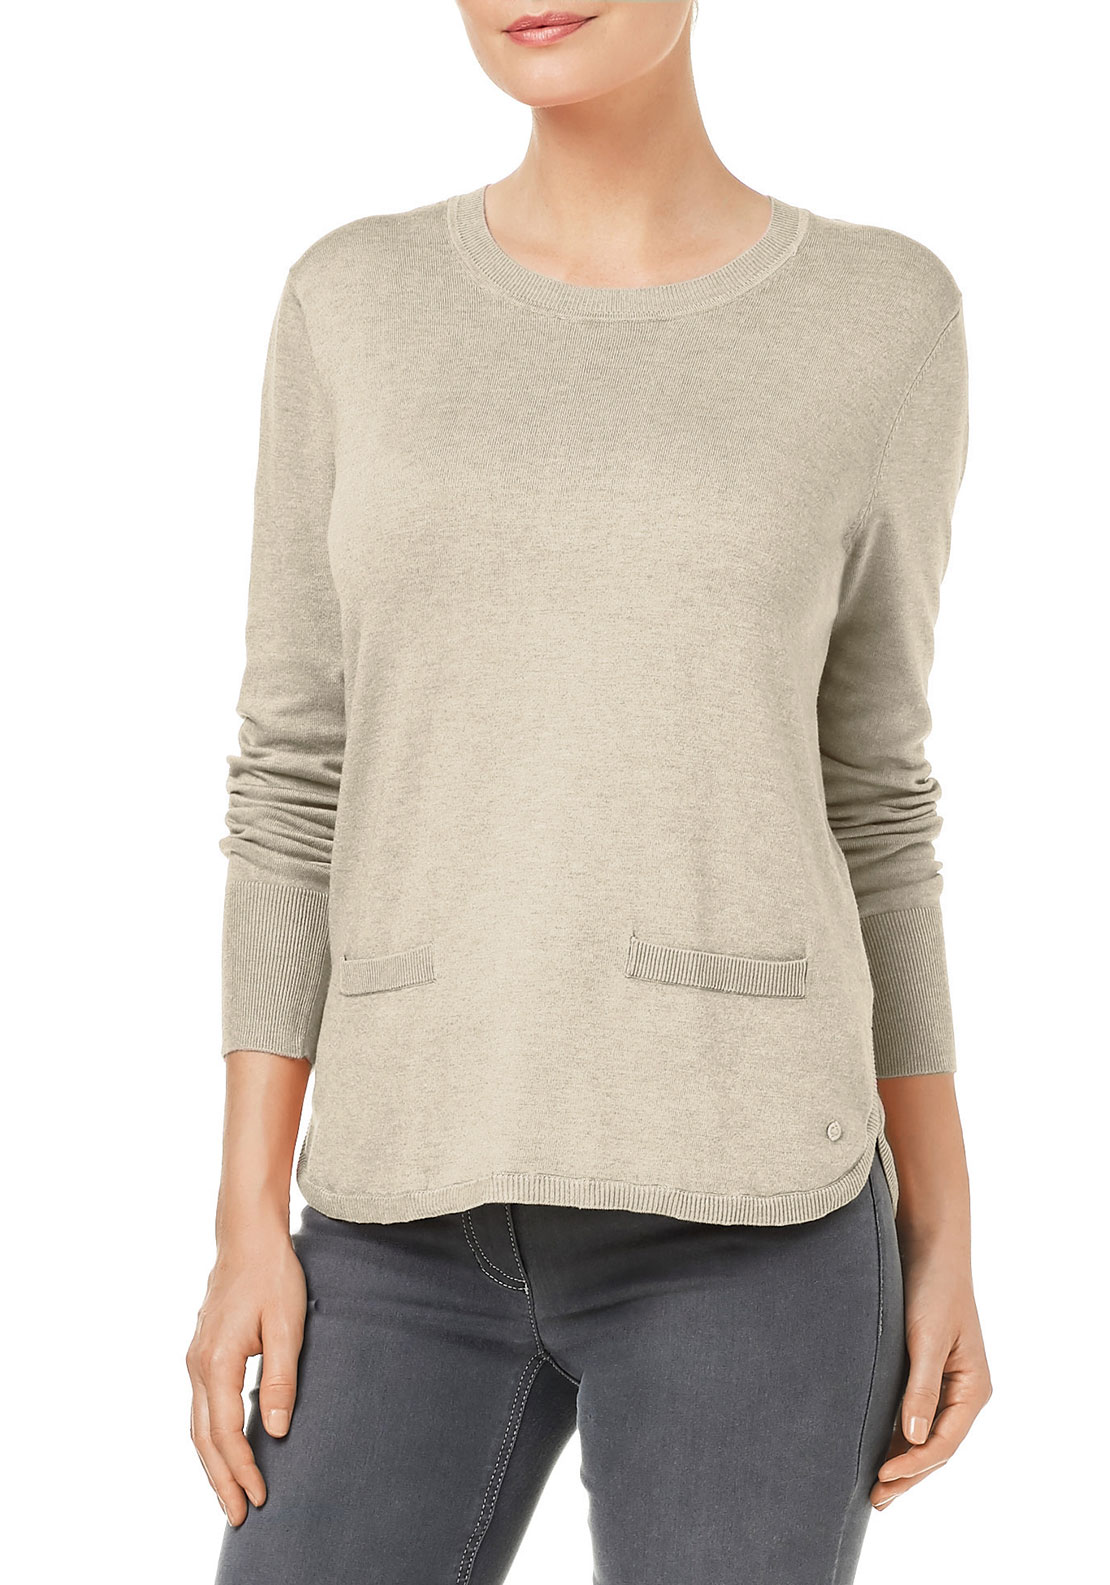 Gerry Weber Fine Knit Jumper, Cream